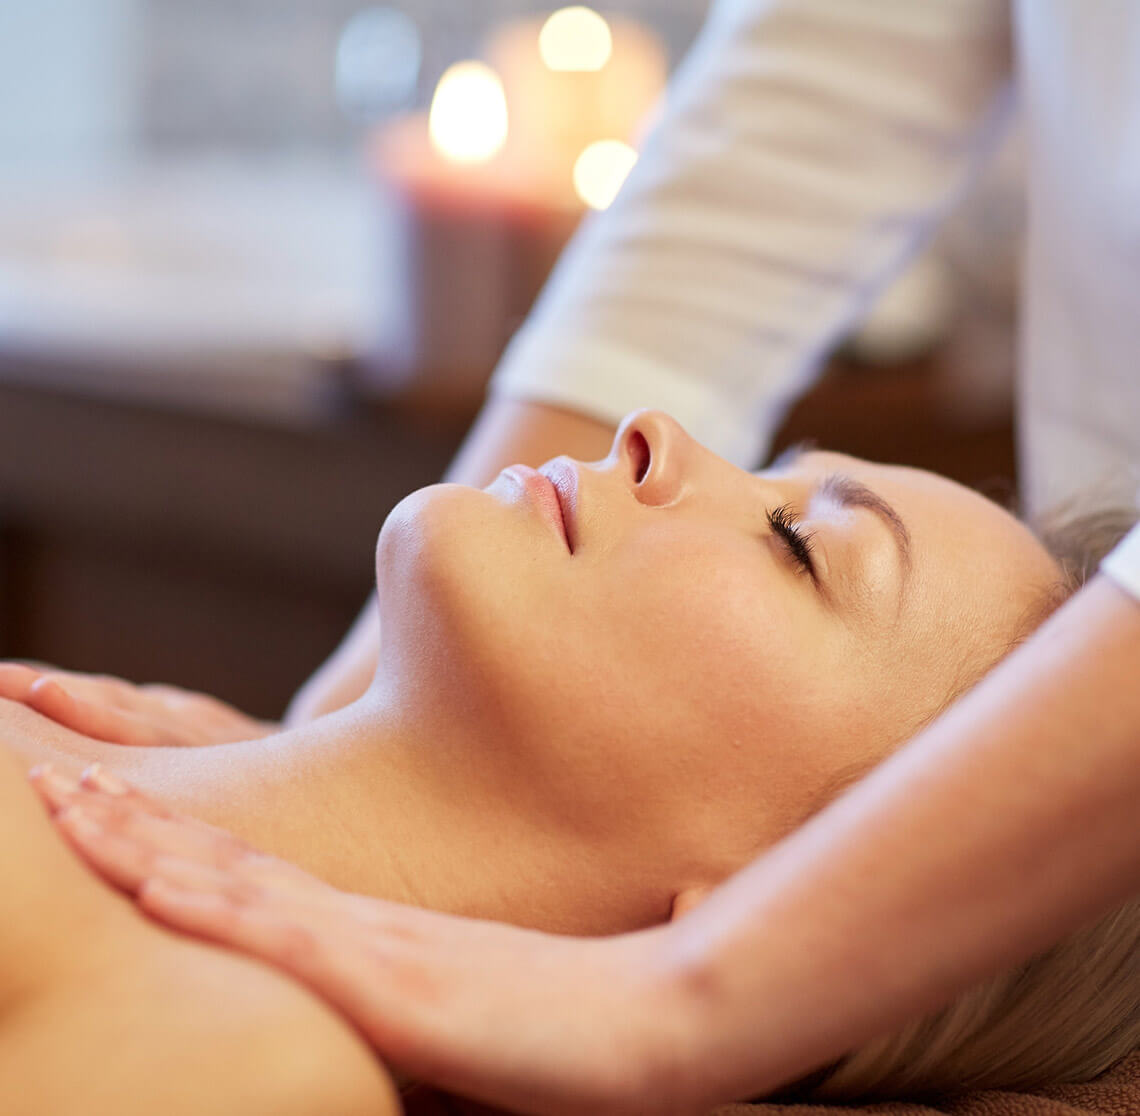 Woman enjoying a relaxing massage